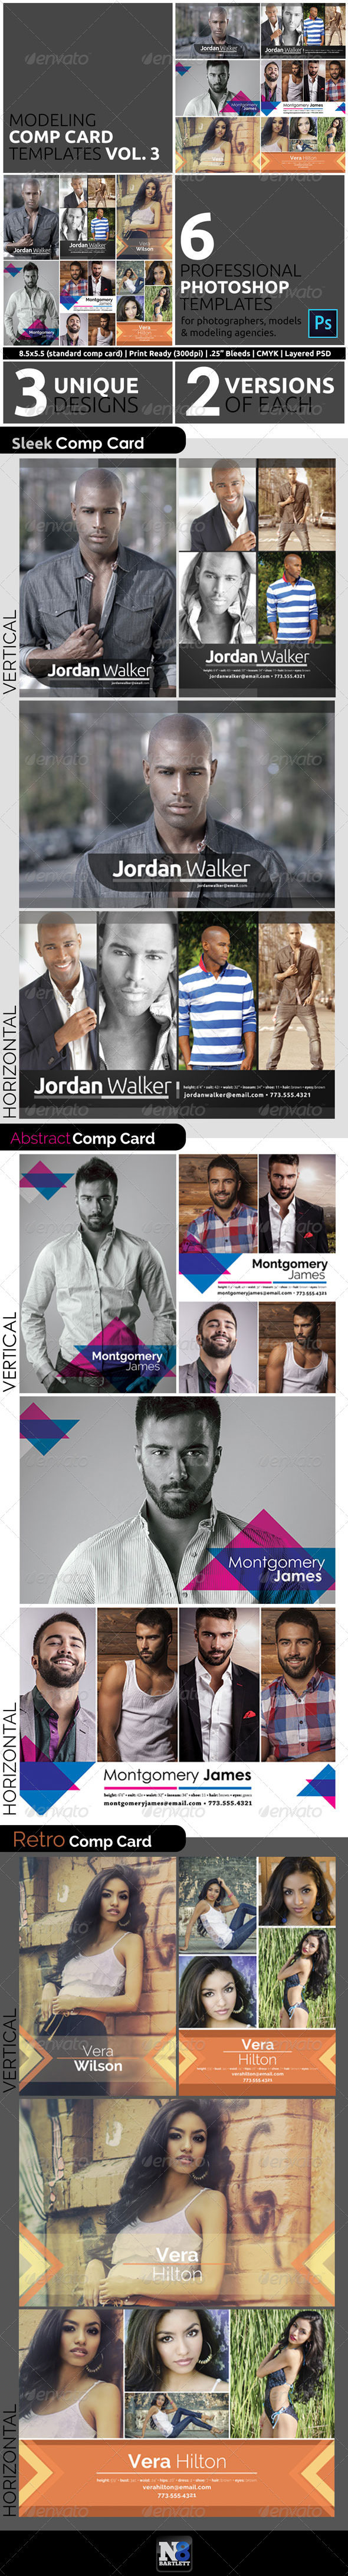 Model Comp Card Template Kit Vol. 3 - Miscellaneous Print Templates